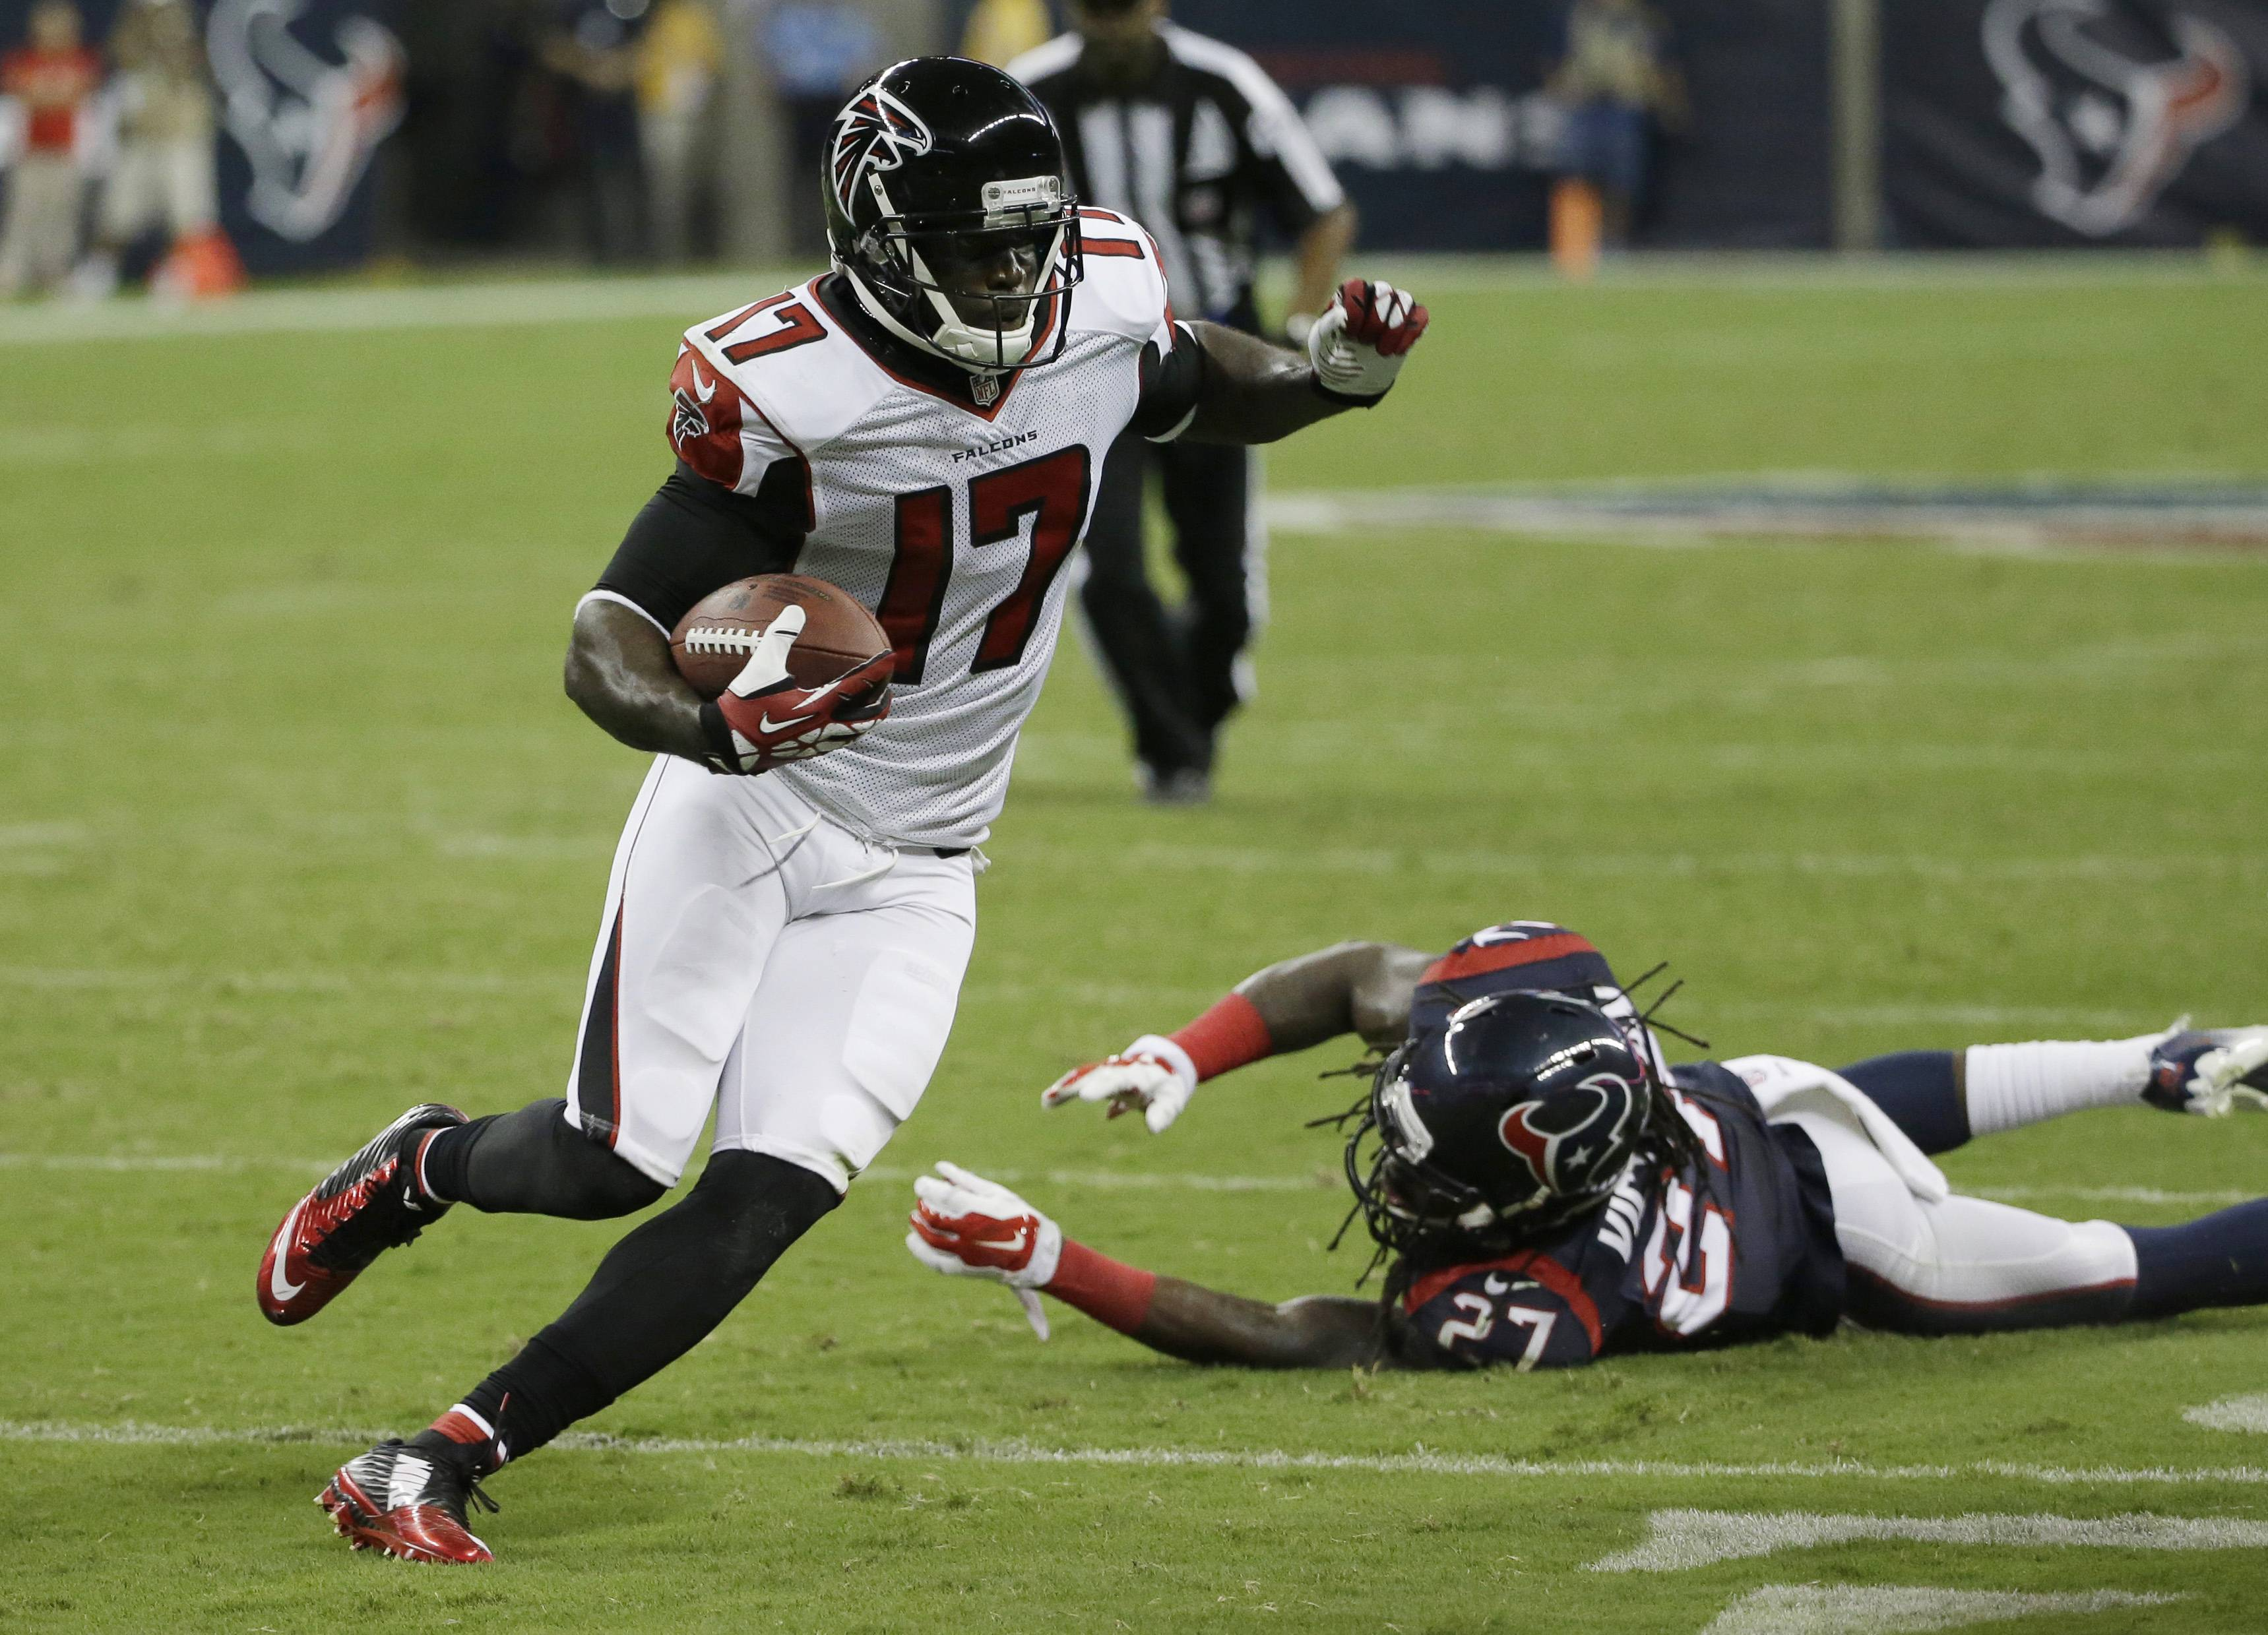 Atlanta Falcons returner Devin Hester (17) evades Houston's Josh Victorian (27) as he runs for a touchdown Saturday in Houston.